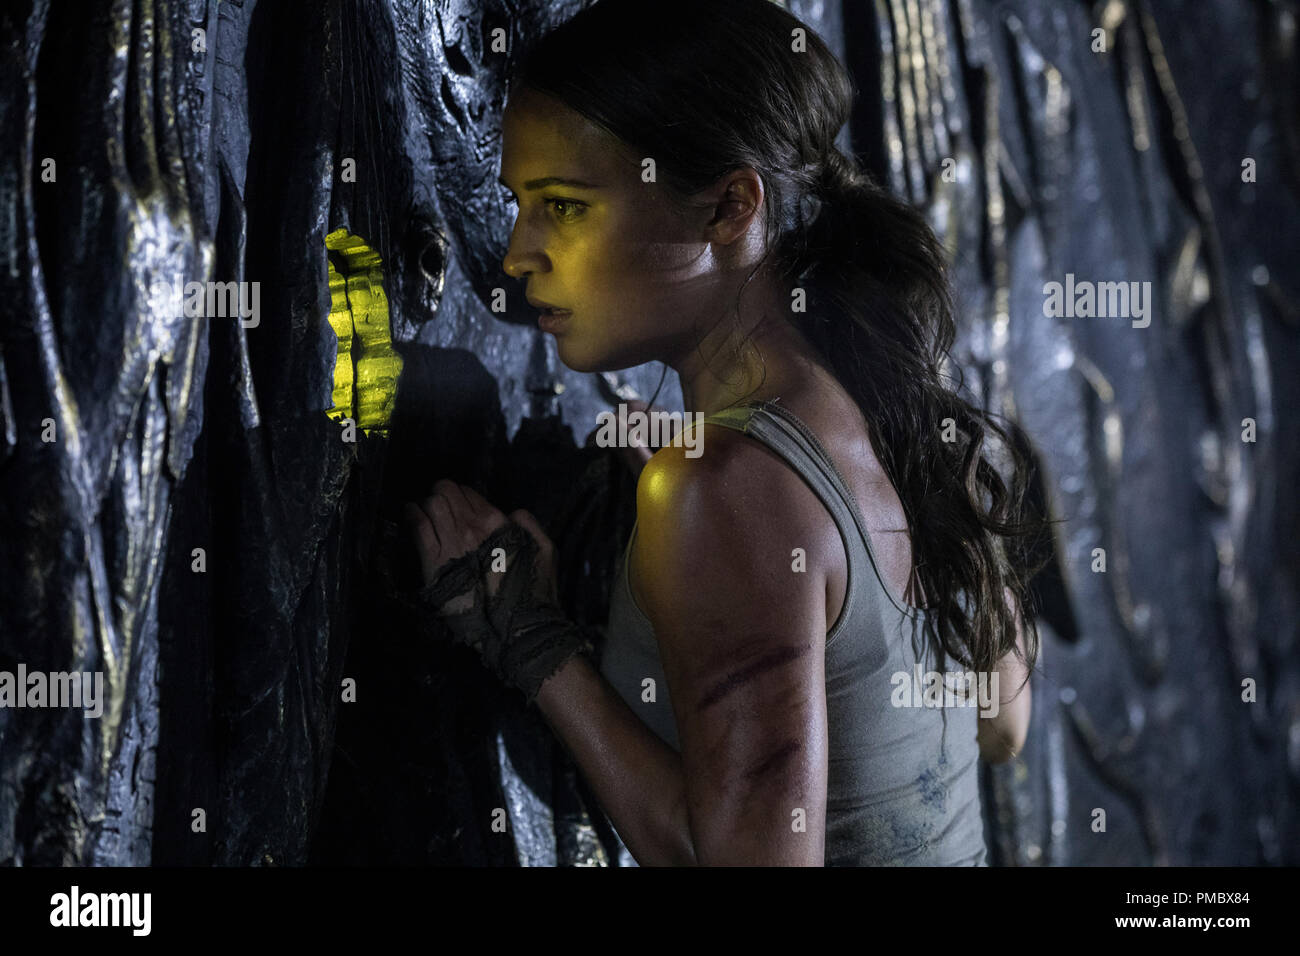 55237ac89 ALICIA VIKANDER as Lara Croft in Warner Bros. Pictures  and  Metro-Goldwyn-Mayer Pictures  action adventure